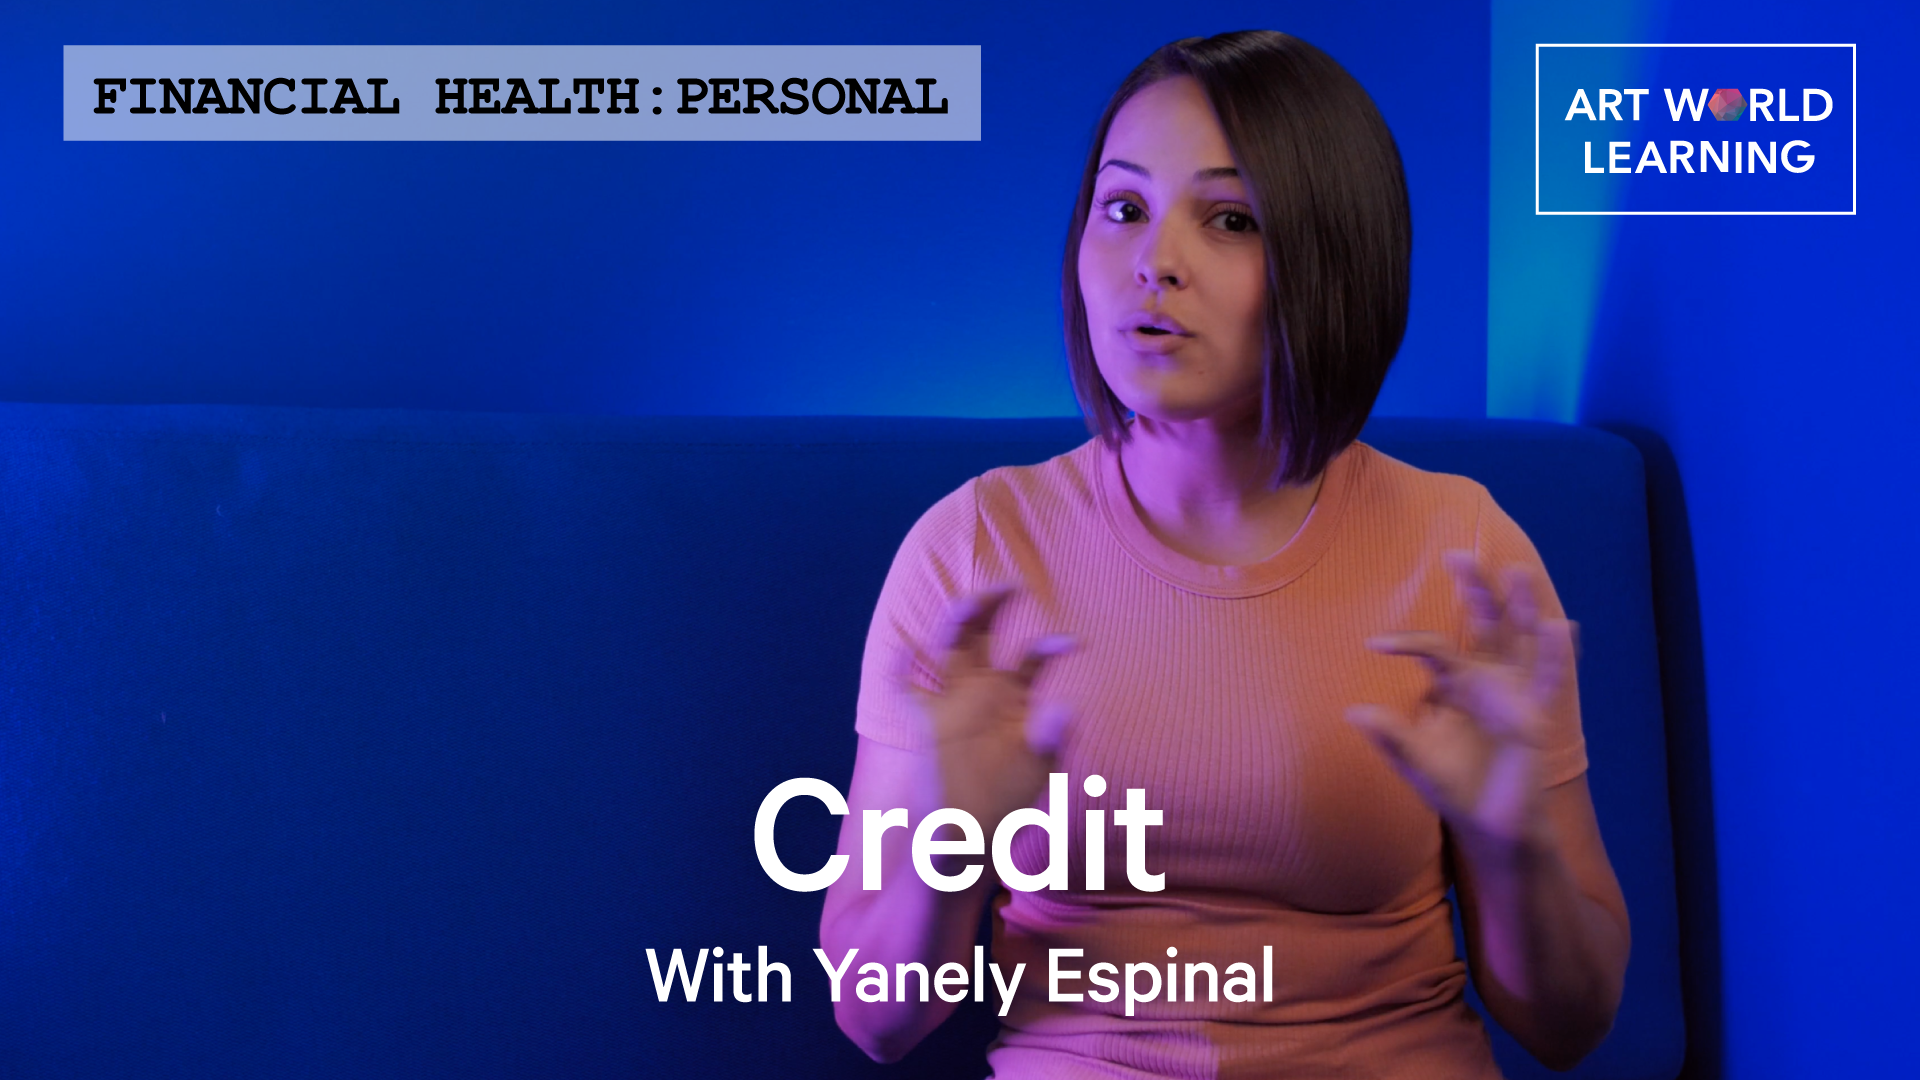 Words Financial Health: Business, Credit With Yanely Espinal over a picture of Yanely Espinal sitting in a blue booth with blue walls.